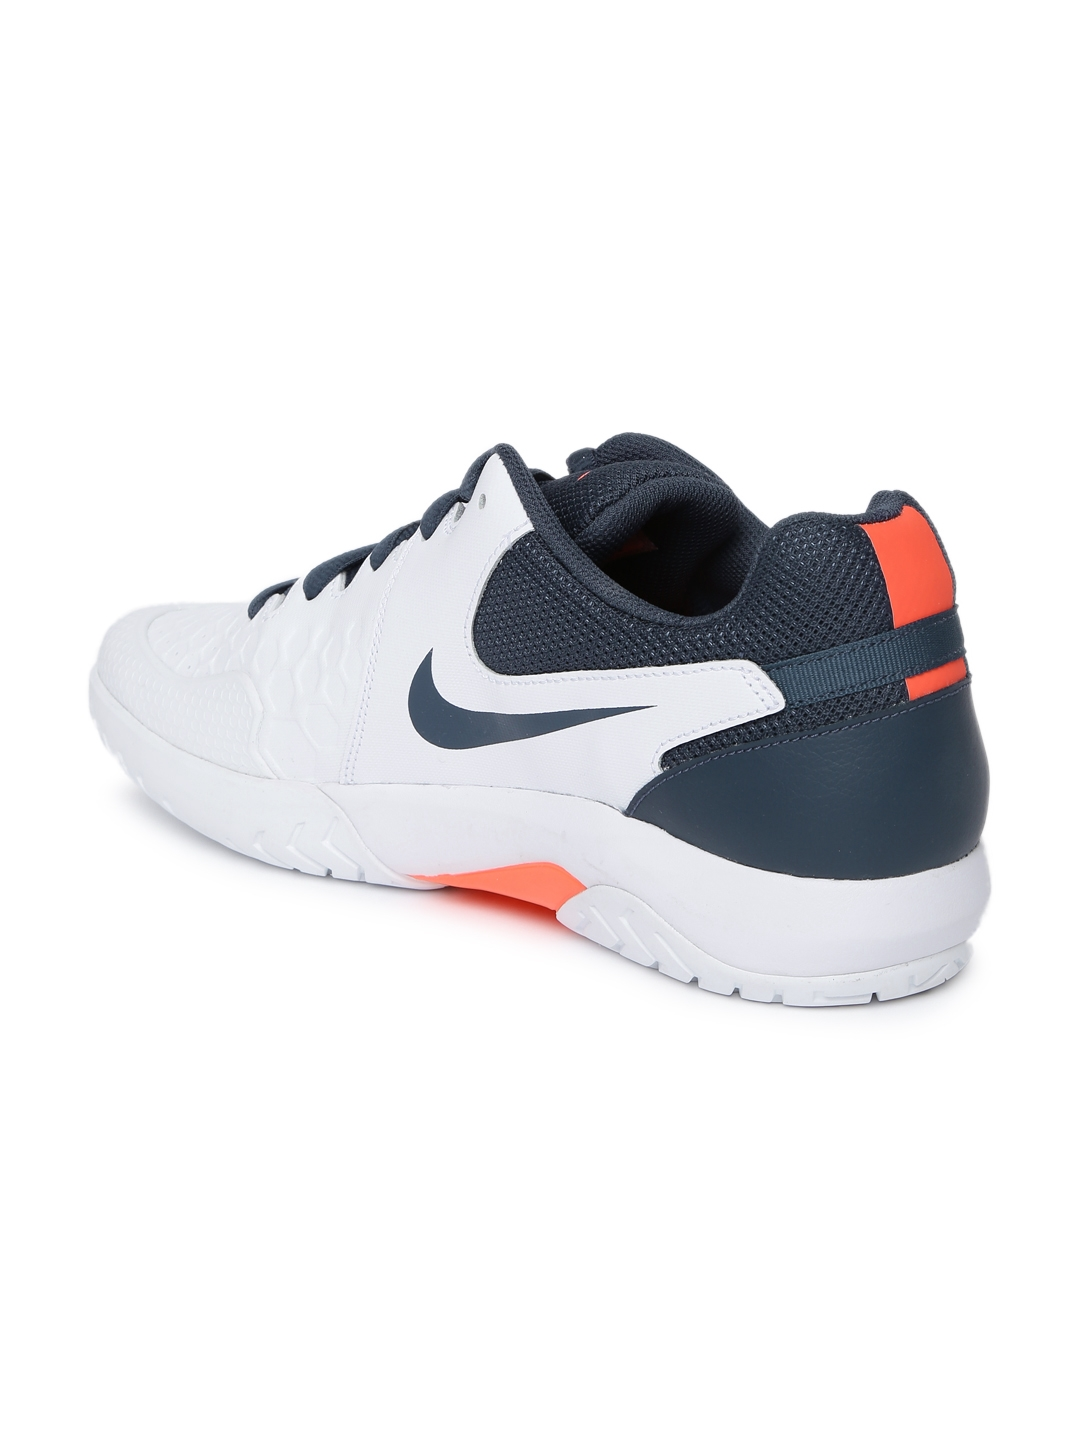 786491c54f931 Buy Nike Men White AIR ZOOM RESISTANCE Tennis Shoes - Sports Shoes ...